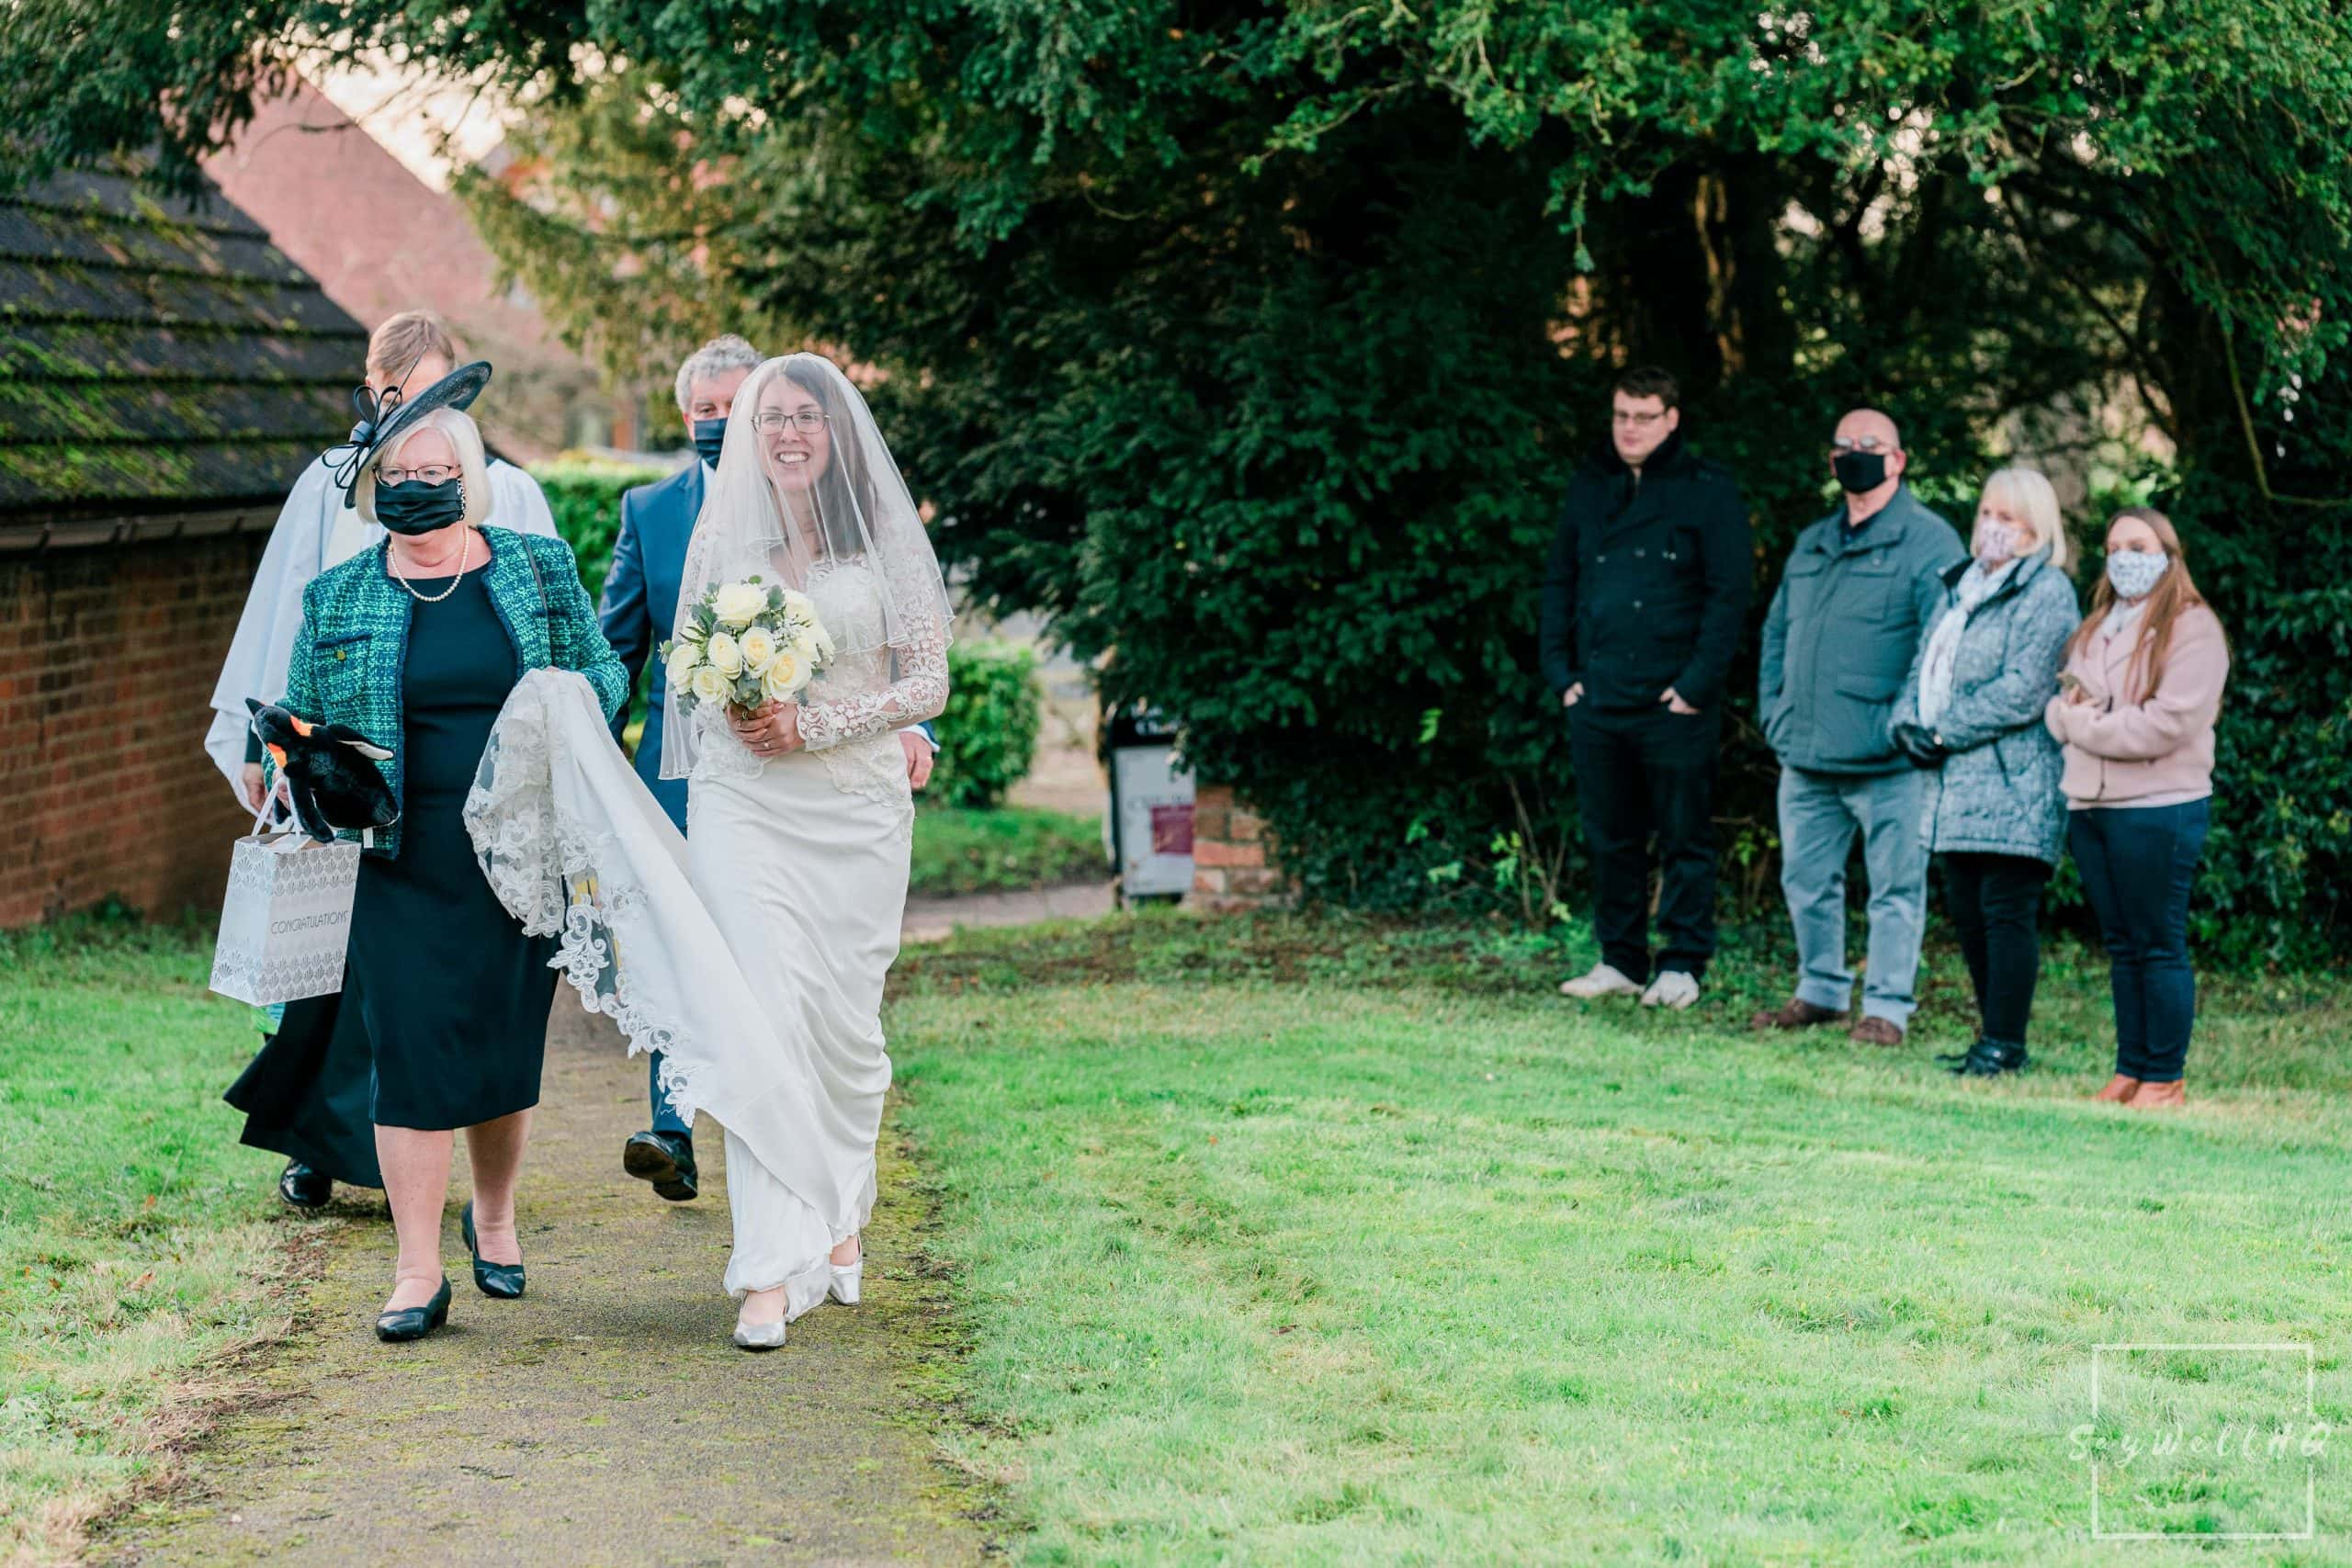 Bride arriving for her wedding at St. Helena Church in Thoroton - Vale of Belvoir wedding photography